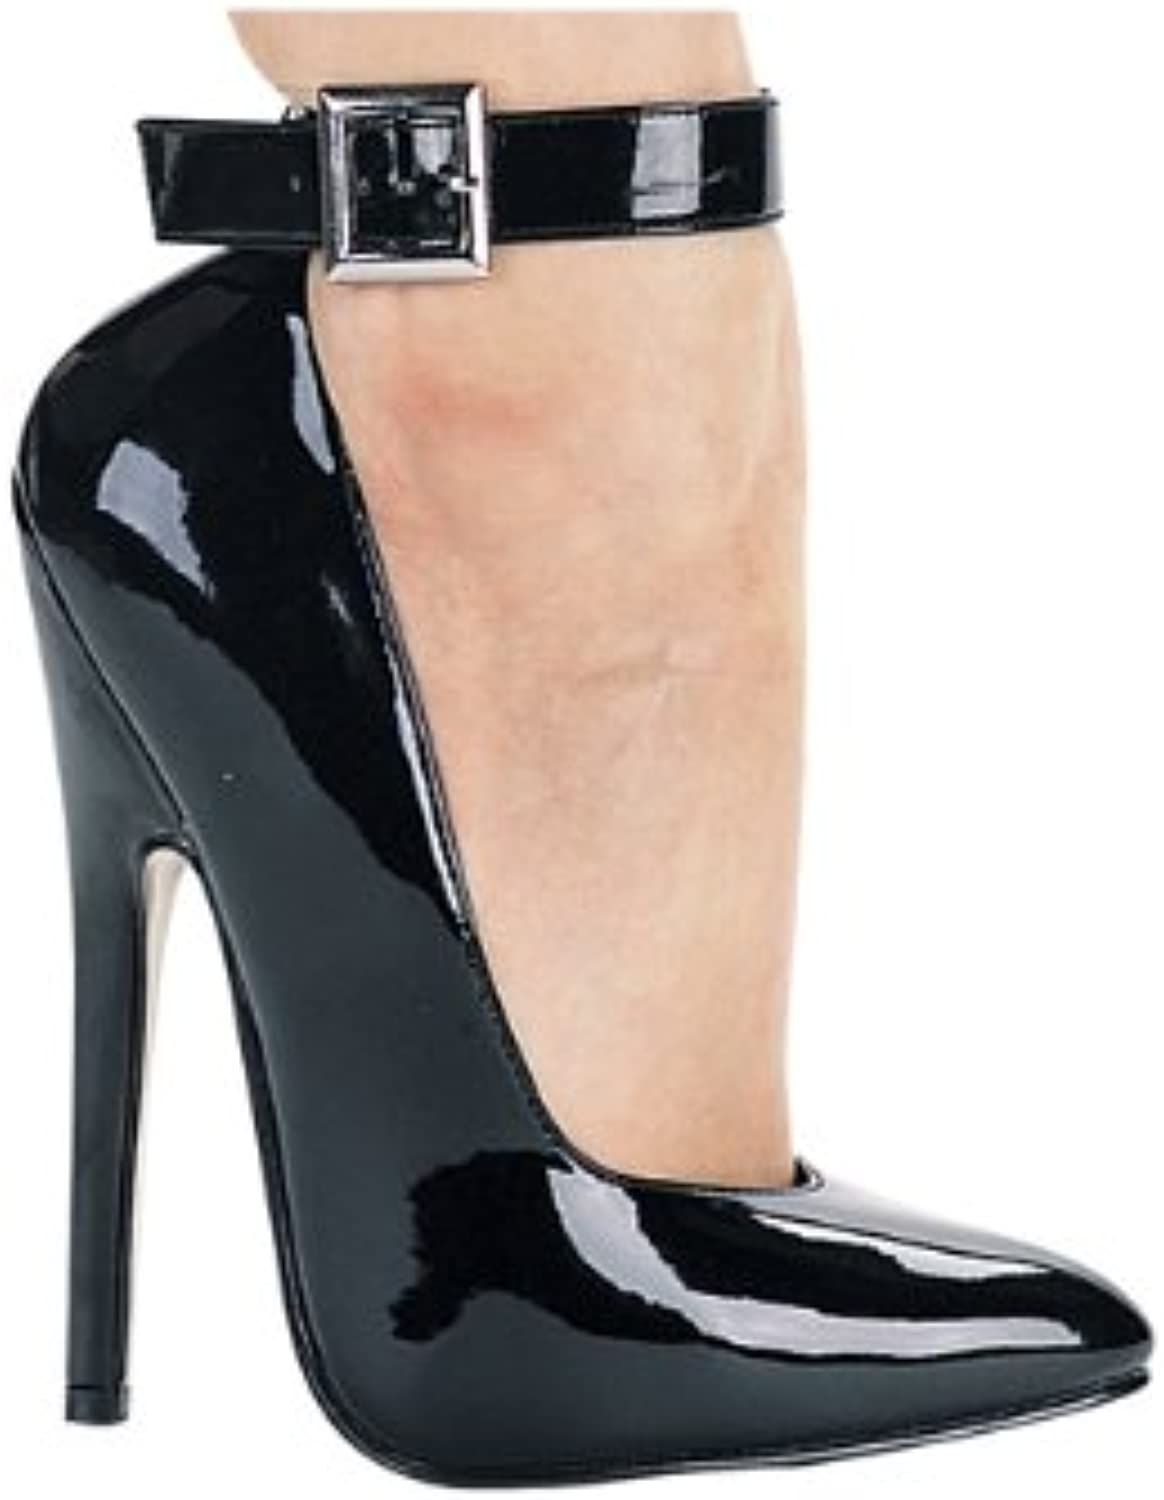 8261 Spike Heel Pump with Ankle Strap High Heel shoes